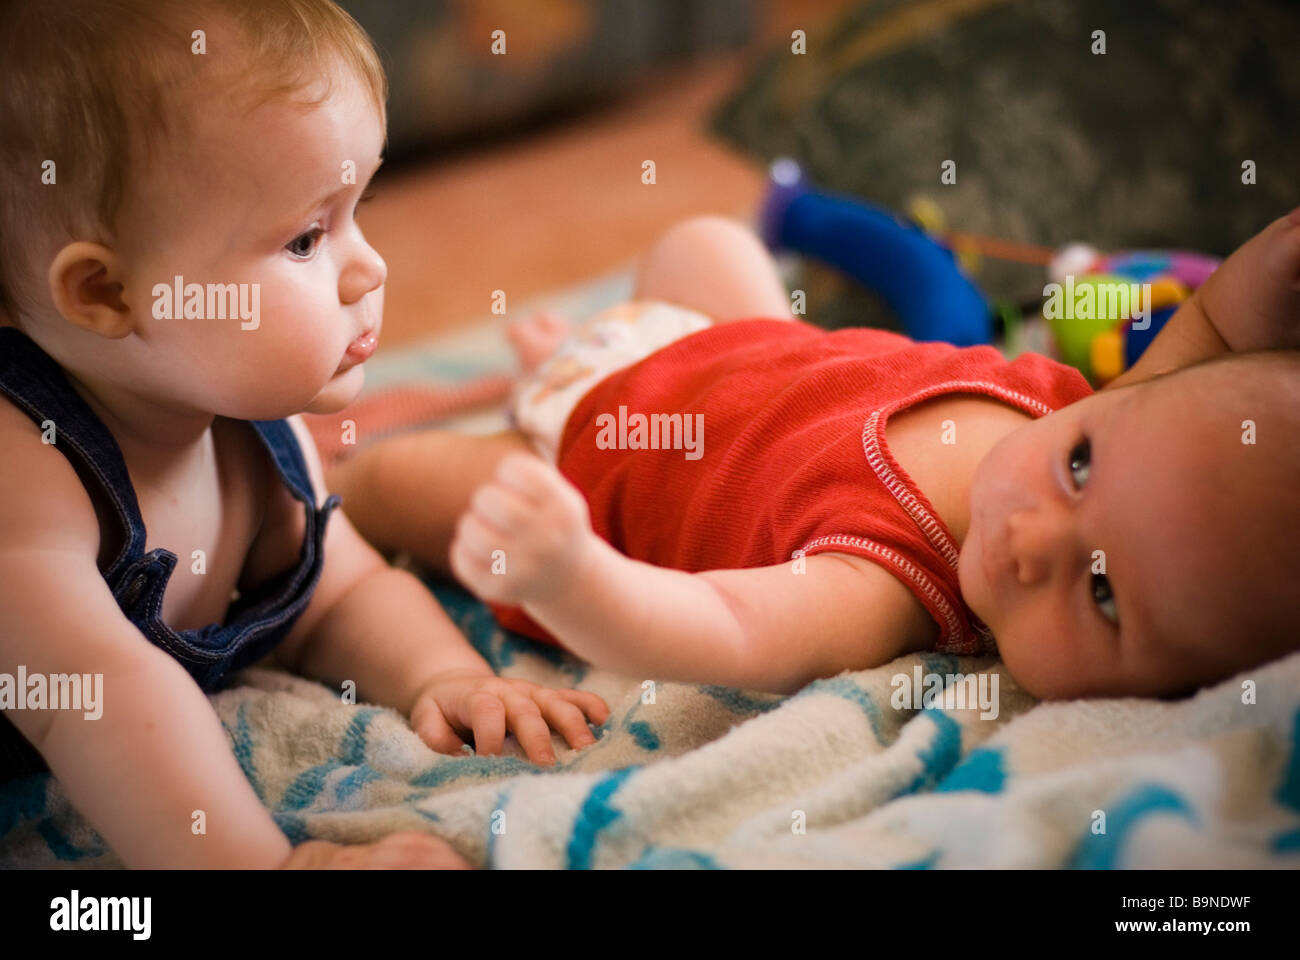 Two babies - Stock Image